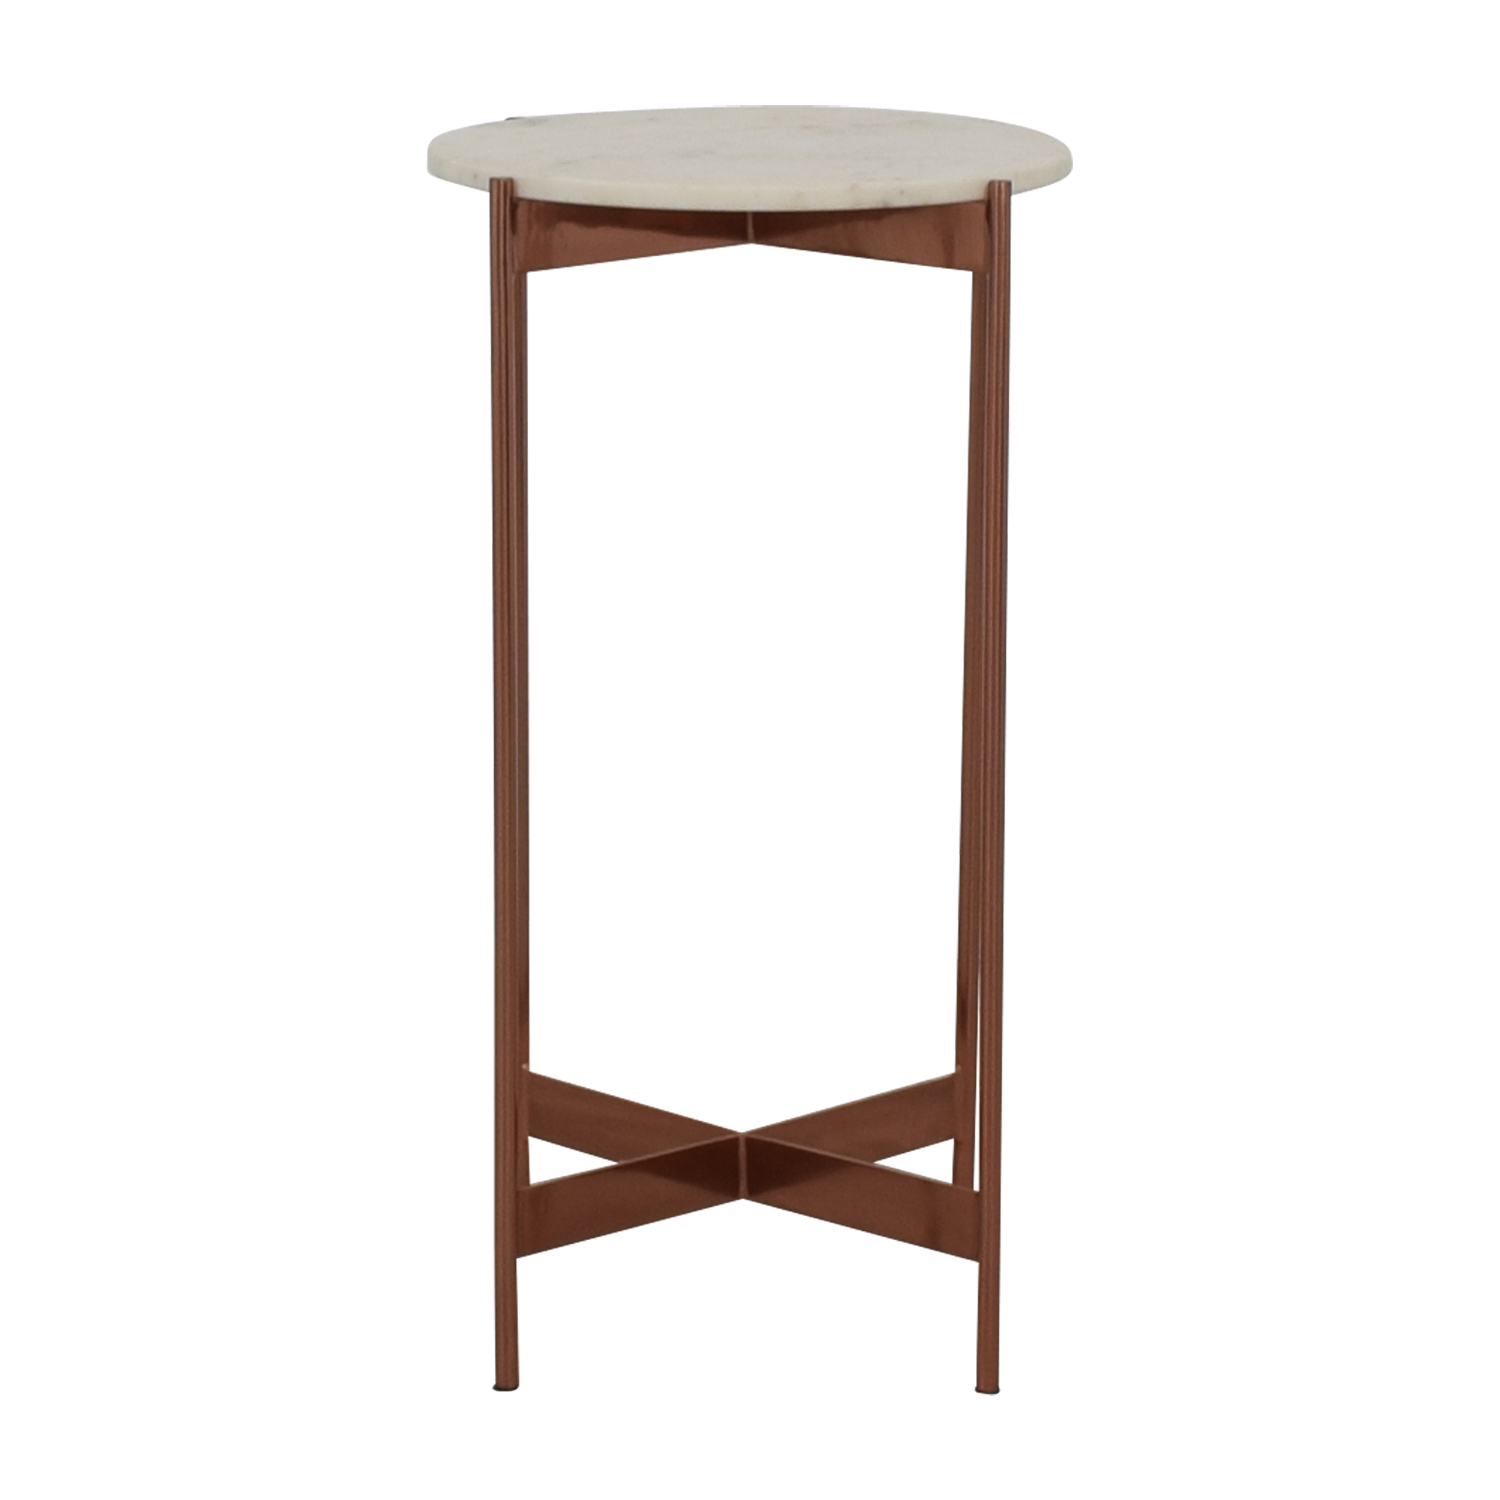 CB2 Marble Pedestal Table / Decorative Accents